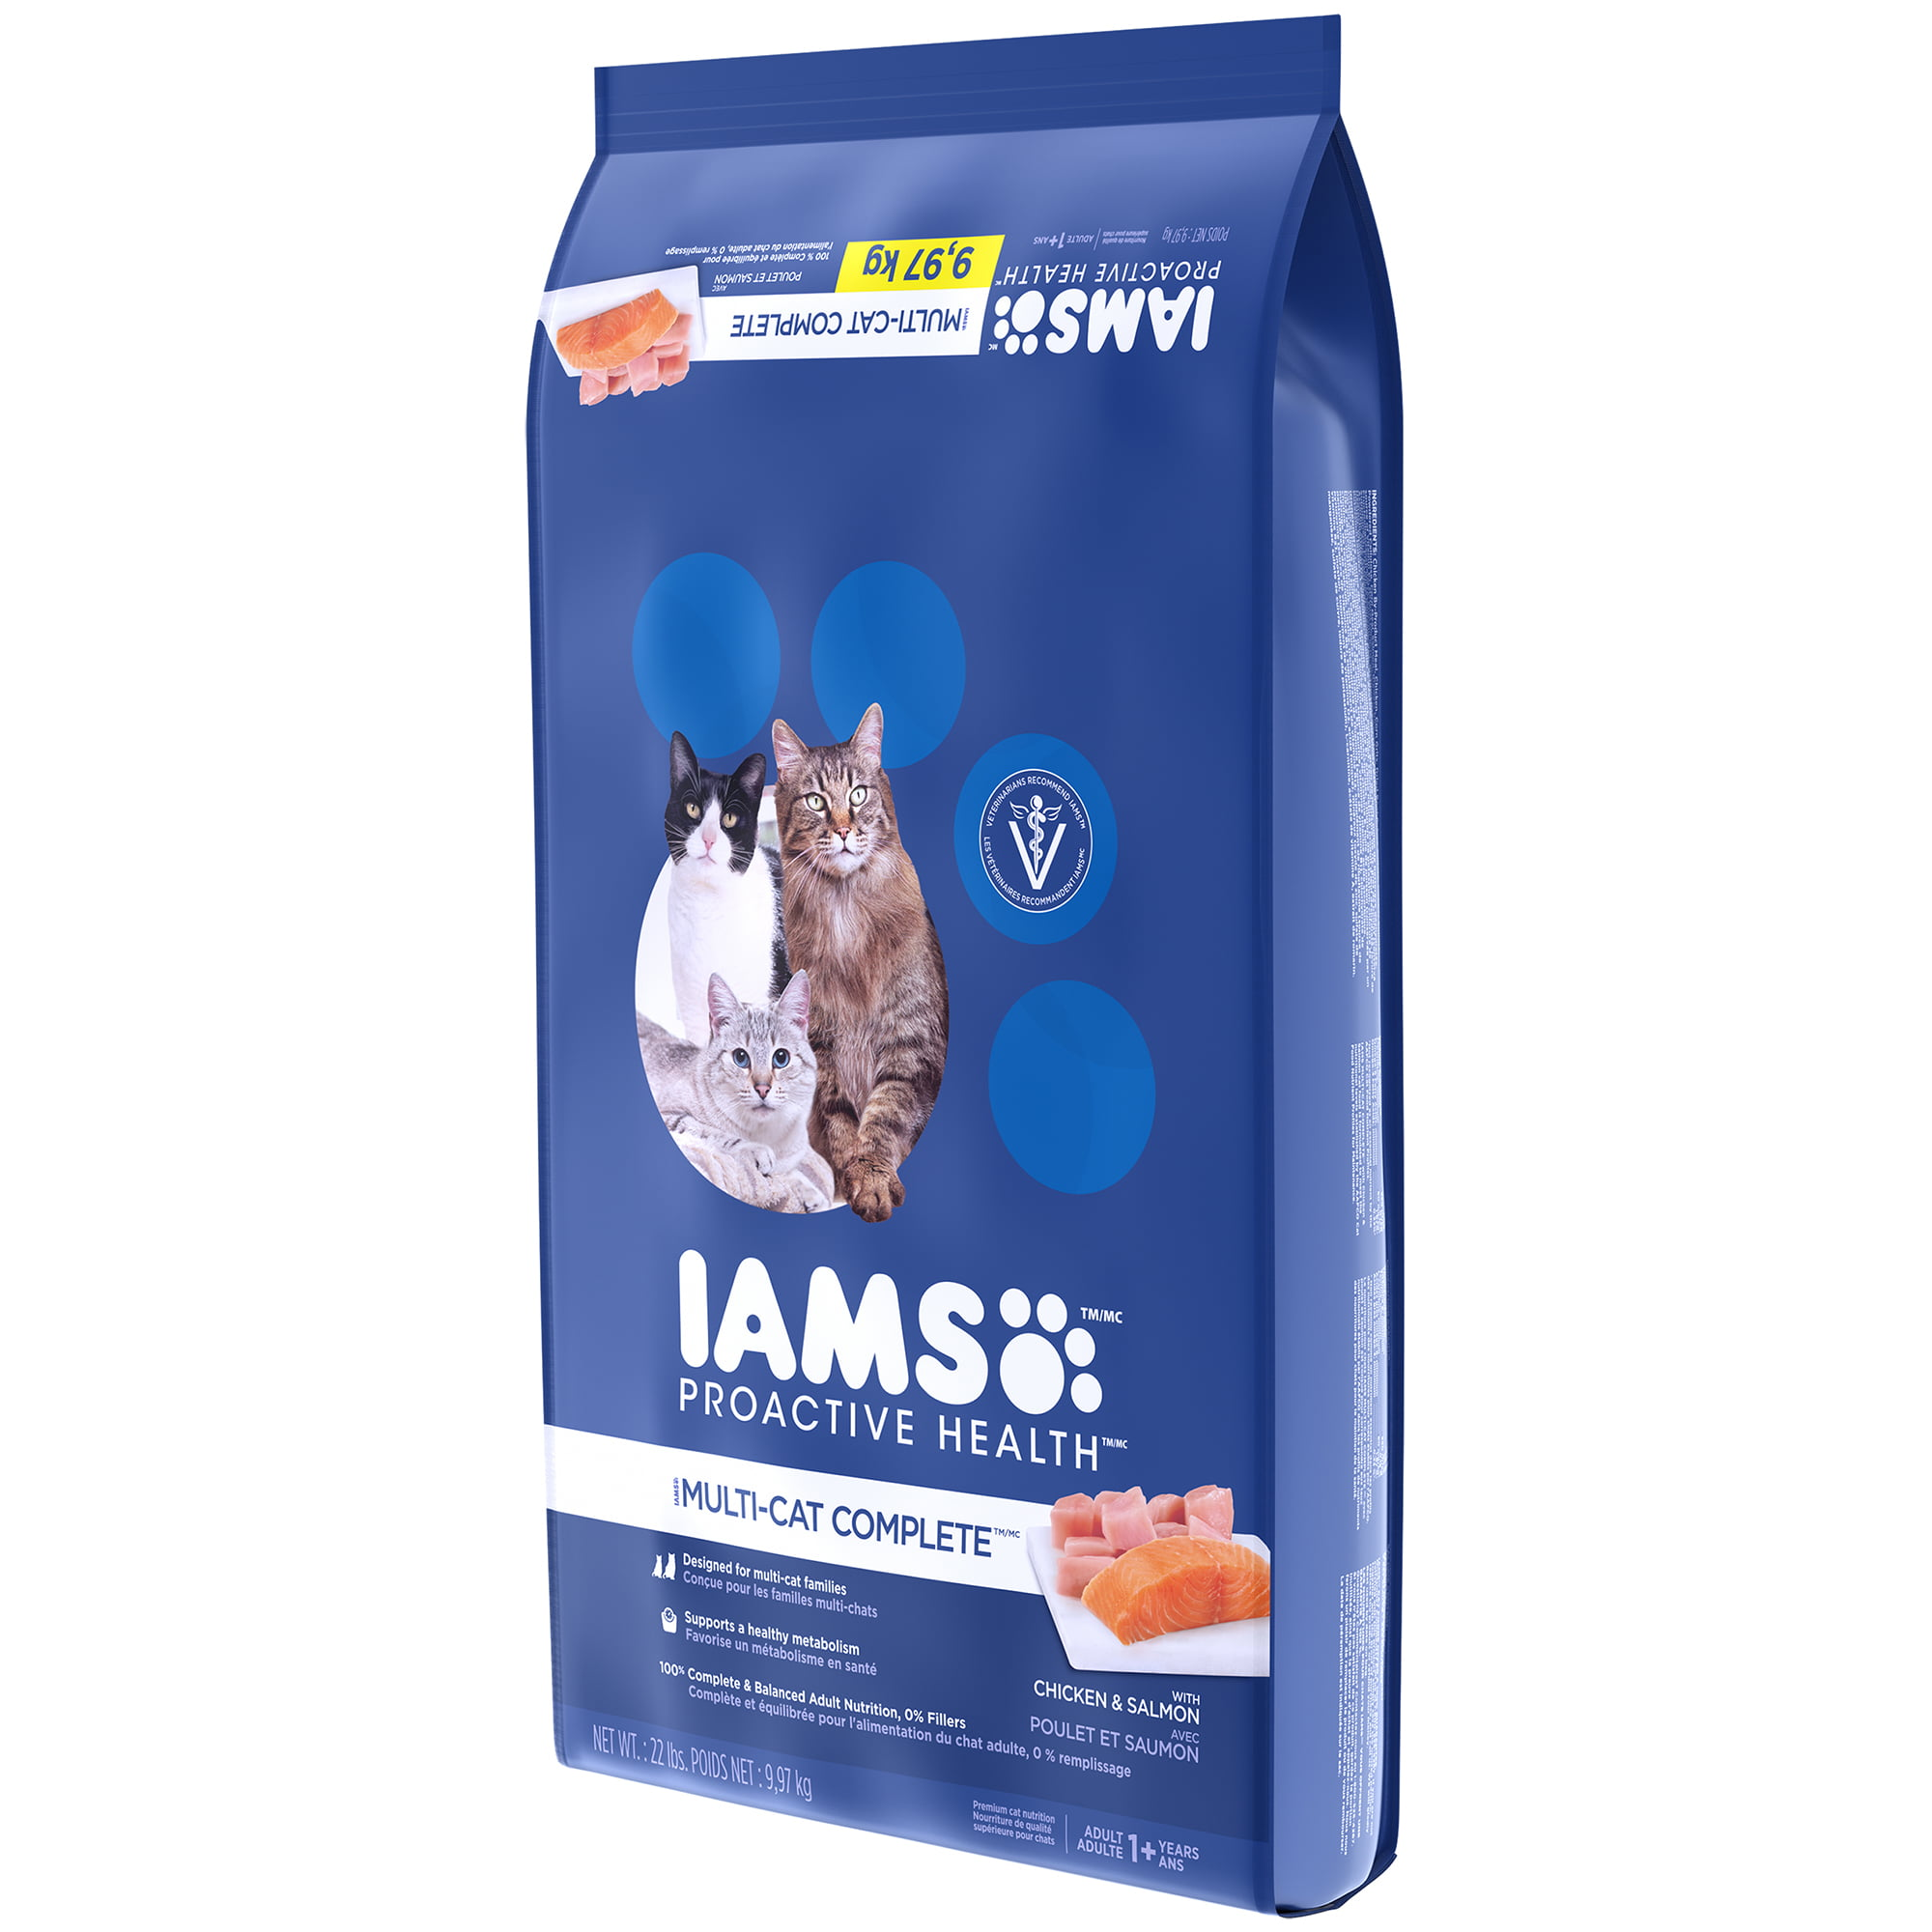 Iams proactive health multi-cat complete with salmon and chicken dry cat  food, 22 lb - Walmart.com